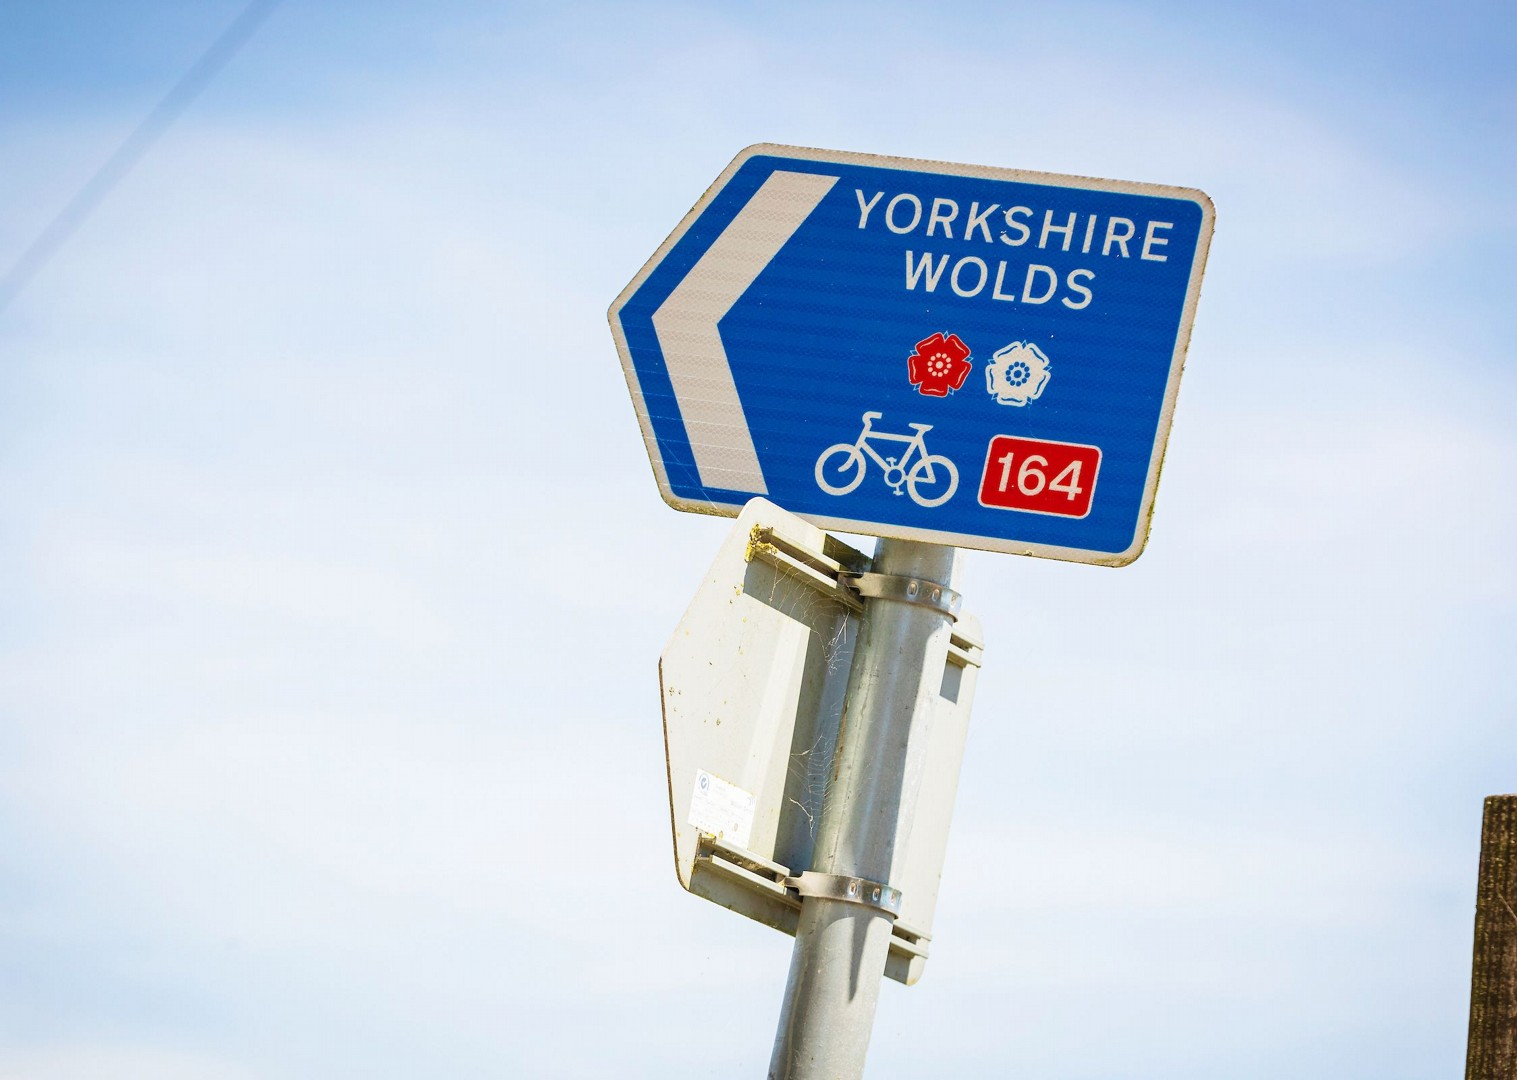 cycling-yorkshire-well-signposted-historical-villages-cycle-tracks.jpg - UK - Yorkshire Wolds - 5 Days Cycling - Self-Guided Leisure Cycling Holiday - Leisure Cycling